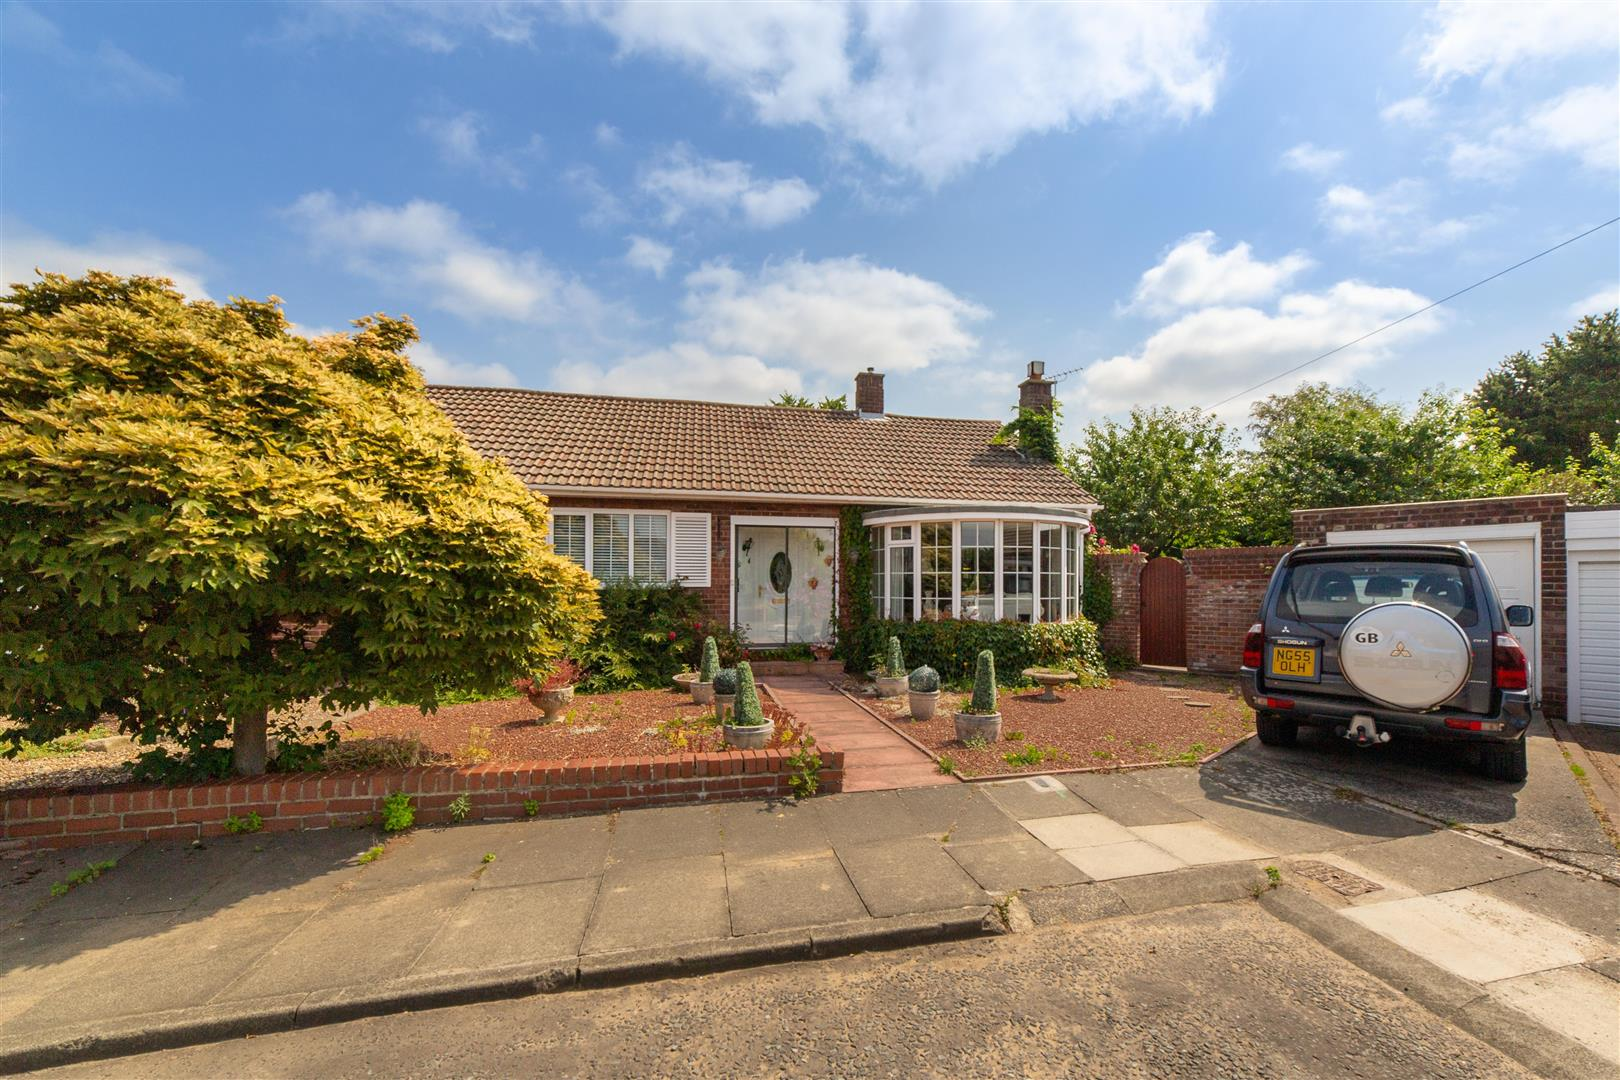 2 bed semi-detached bungalow for sale in Linwood Place, Newcastle Upon Tyne, NE3